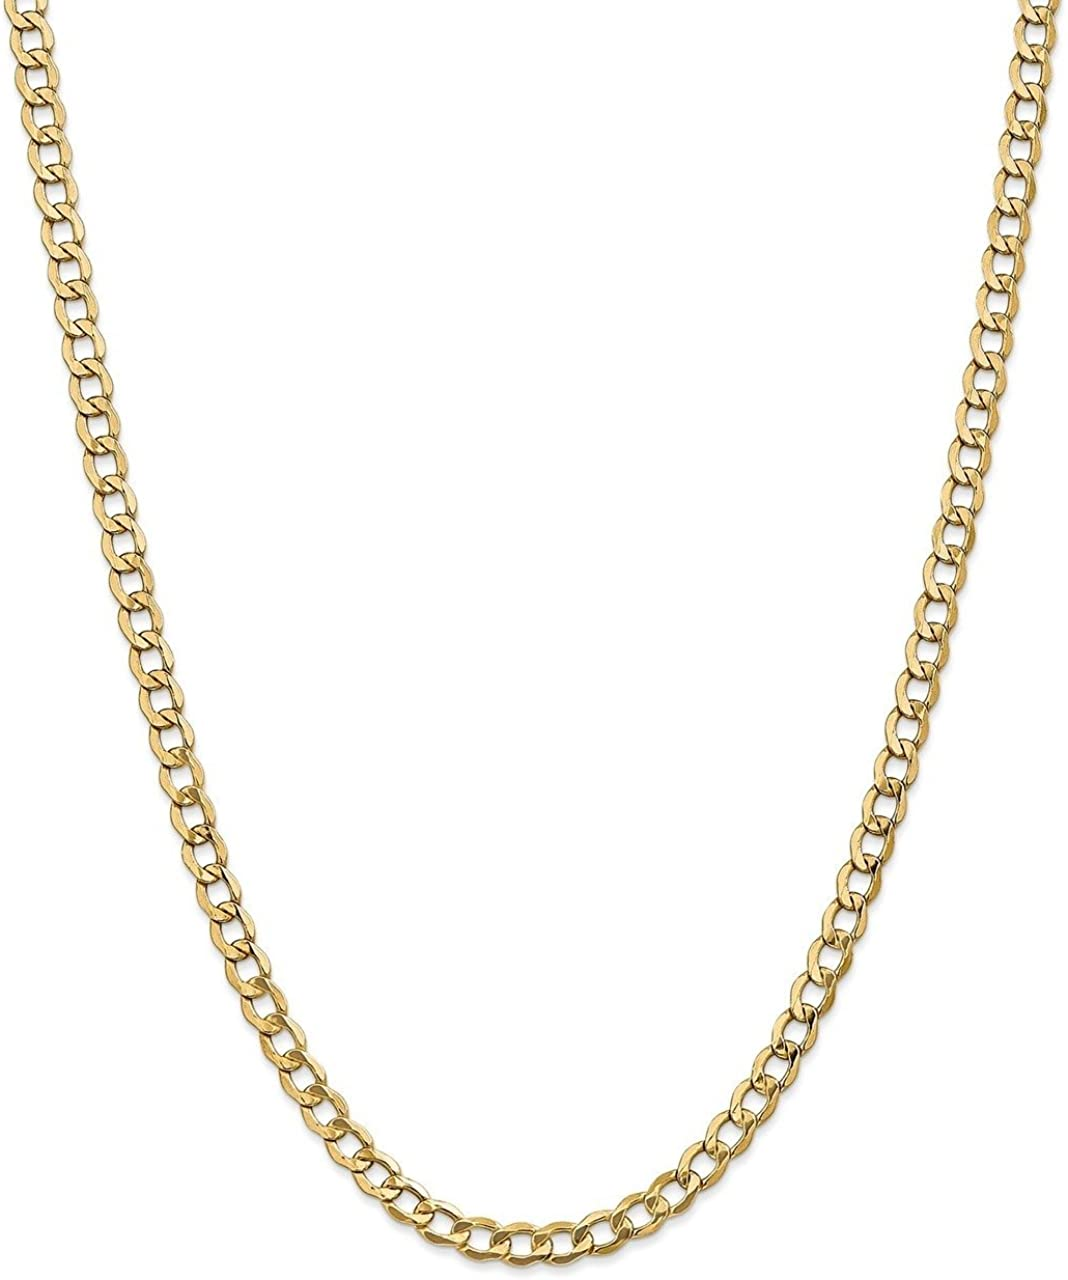 Lex /& Lu Leslies 14k Yellow Gold 5.25mm Semi Solid Curb Link Chain Necklace or Bracelet